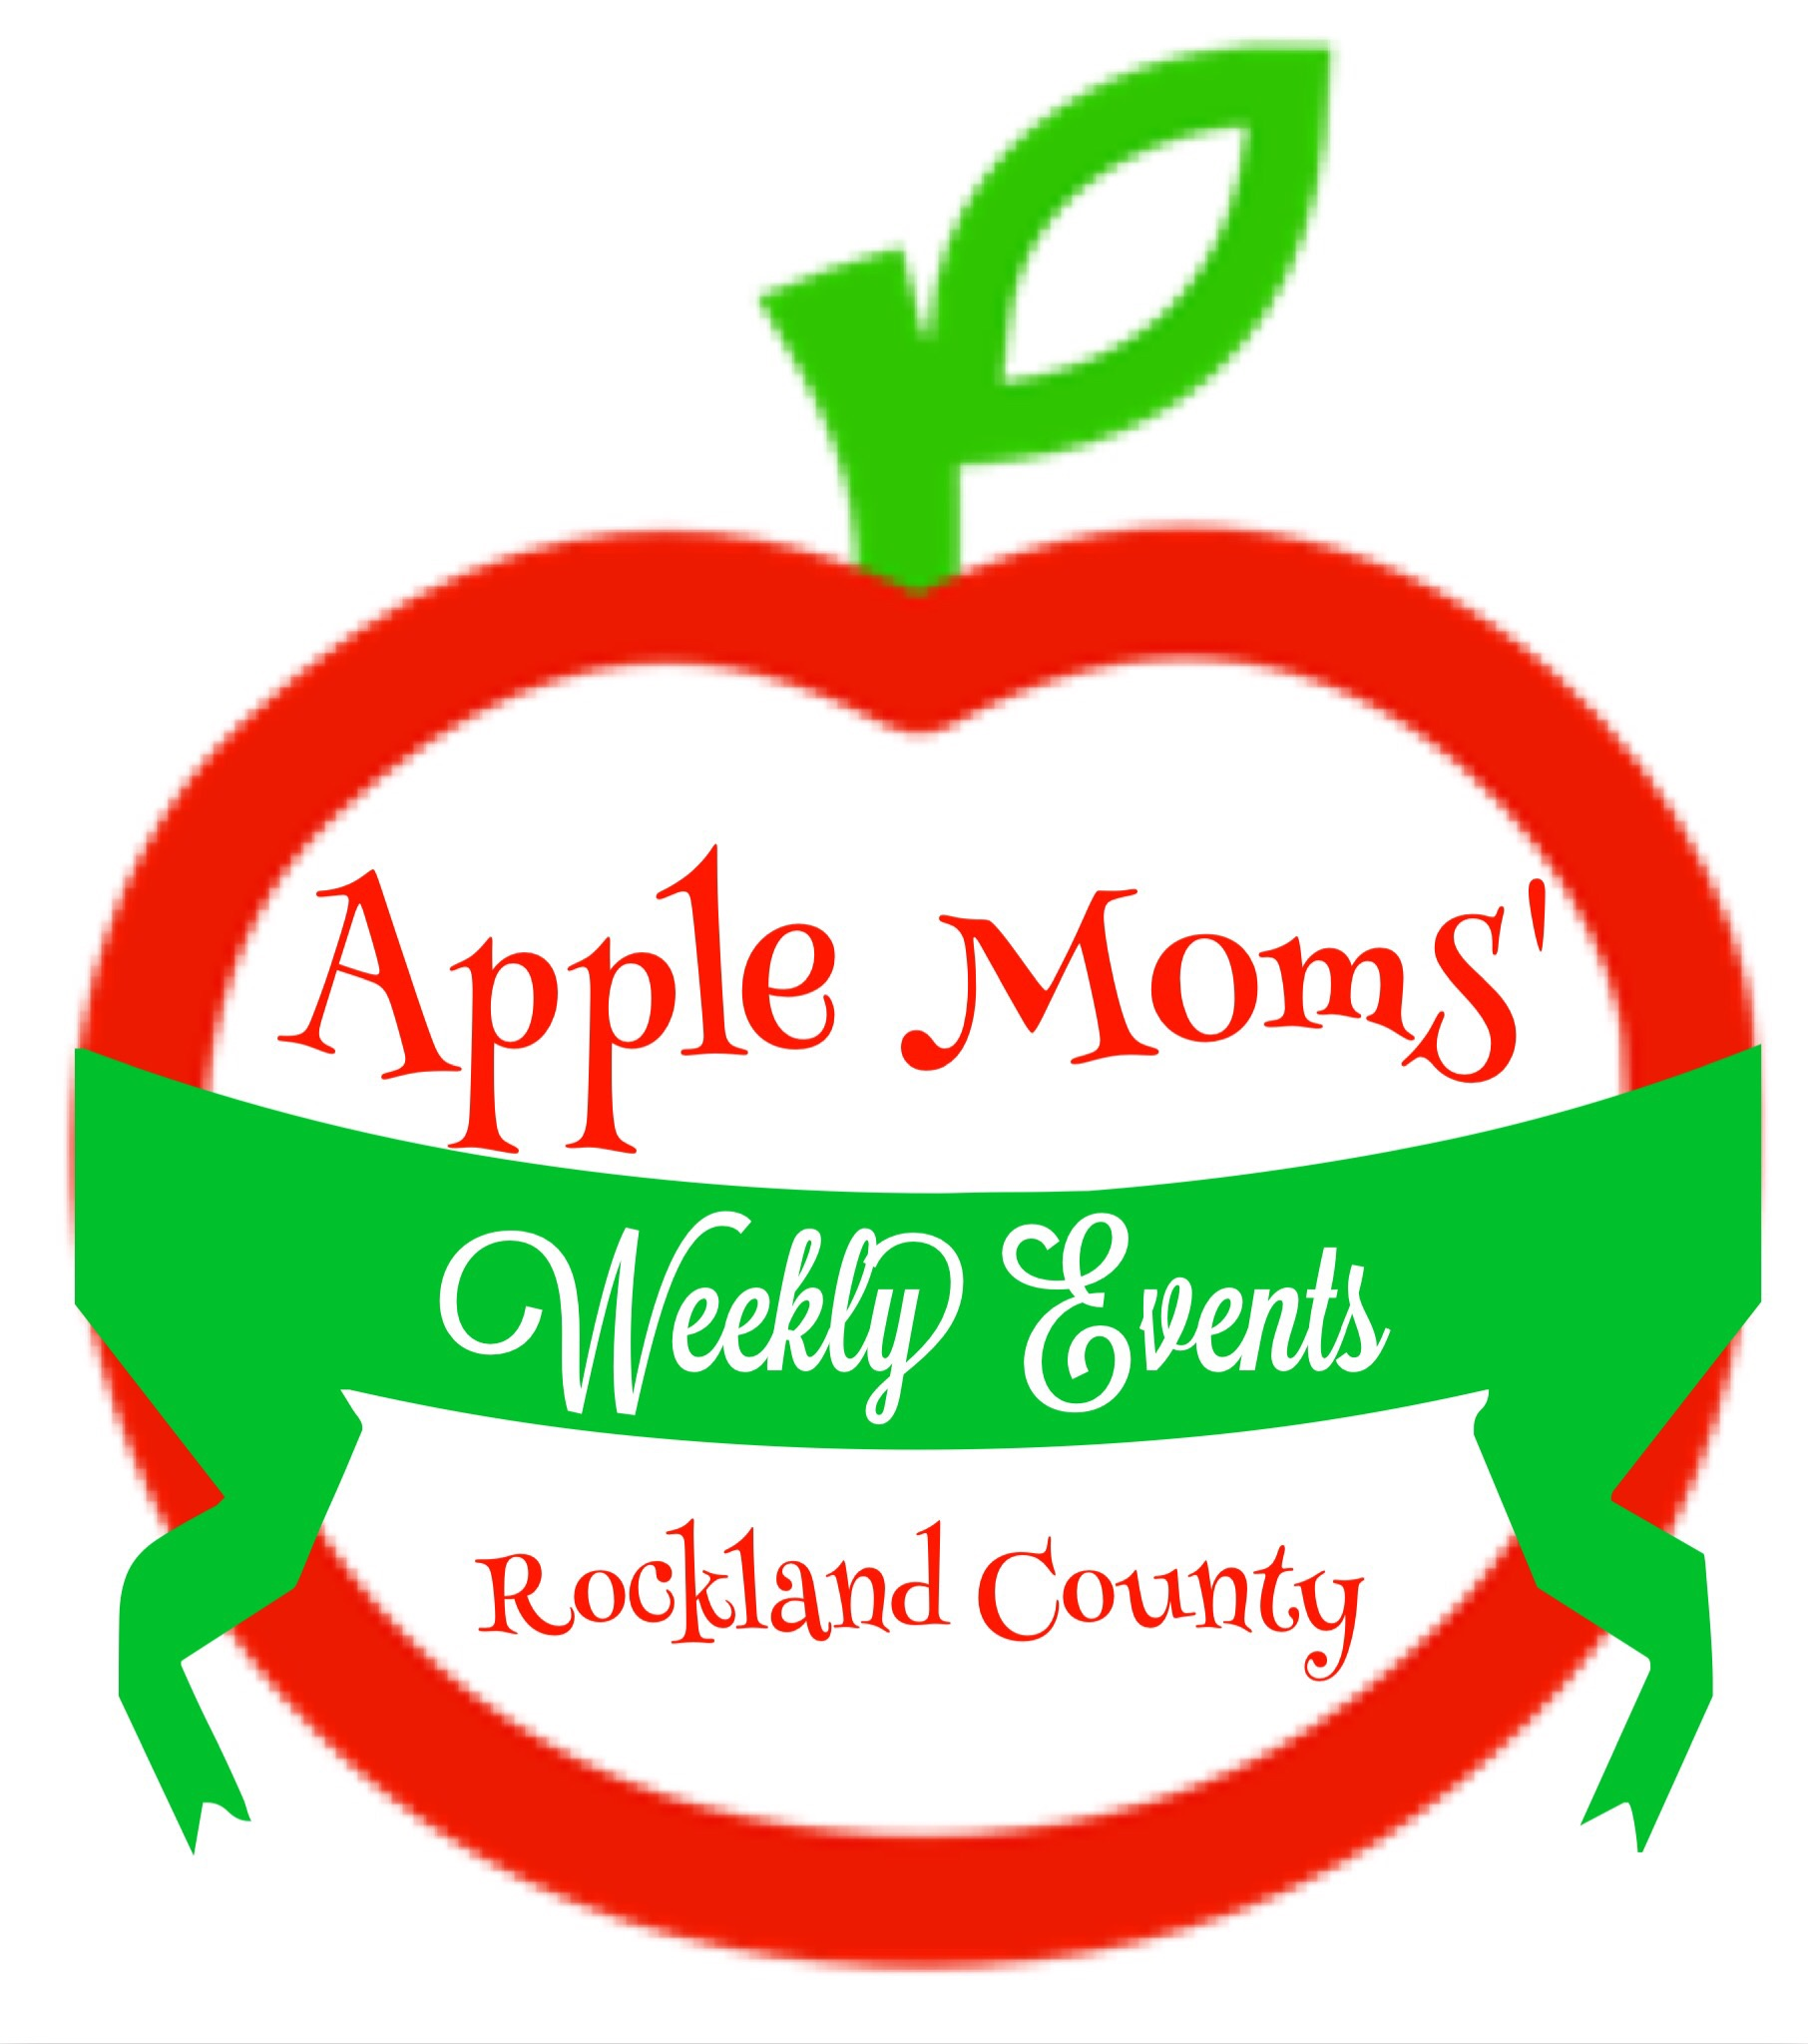 Rockland County Weekly Events 9/24 – 9/30